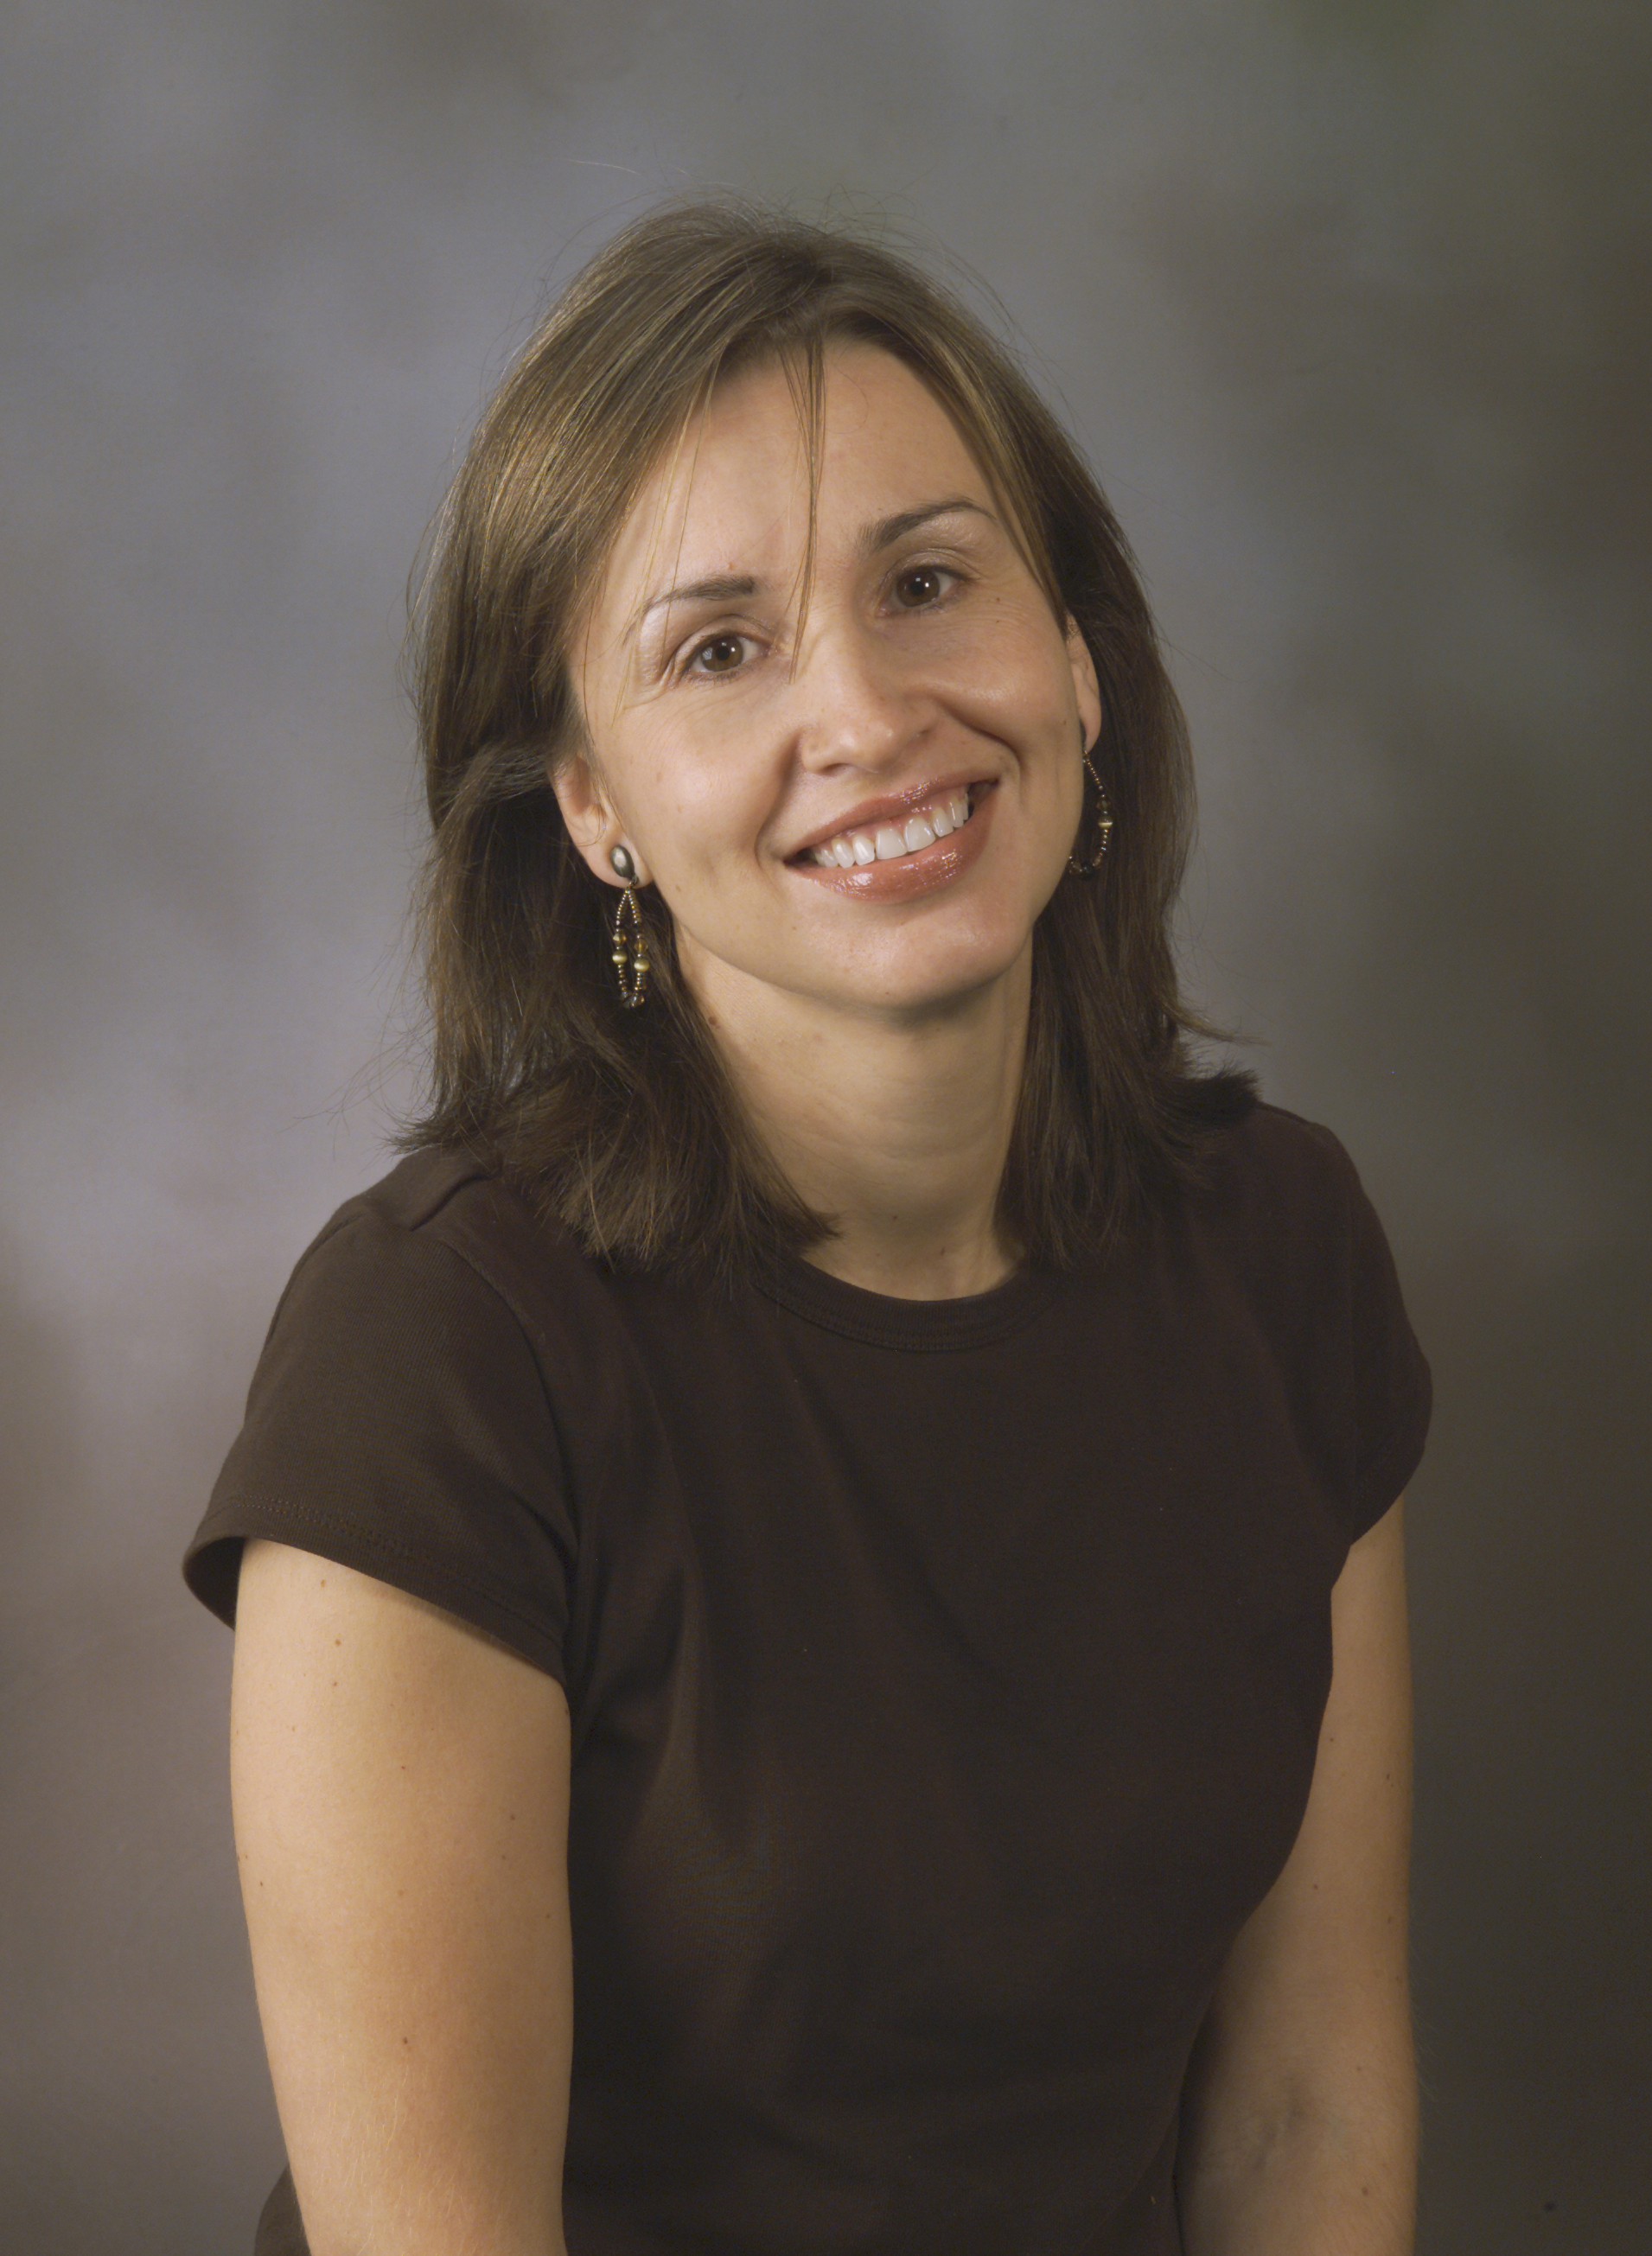 Studio head and shoulders portrait of Sonia Hirt.